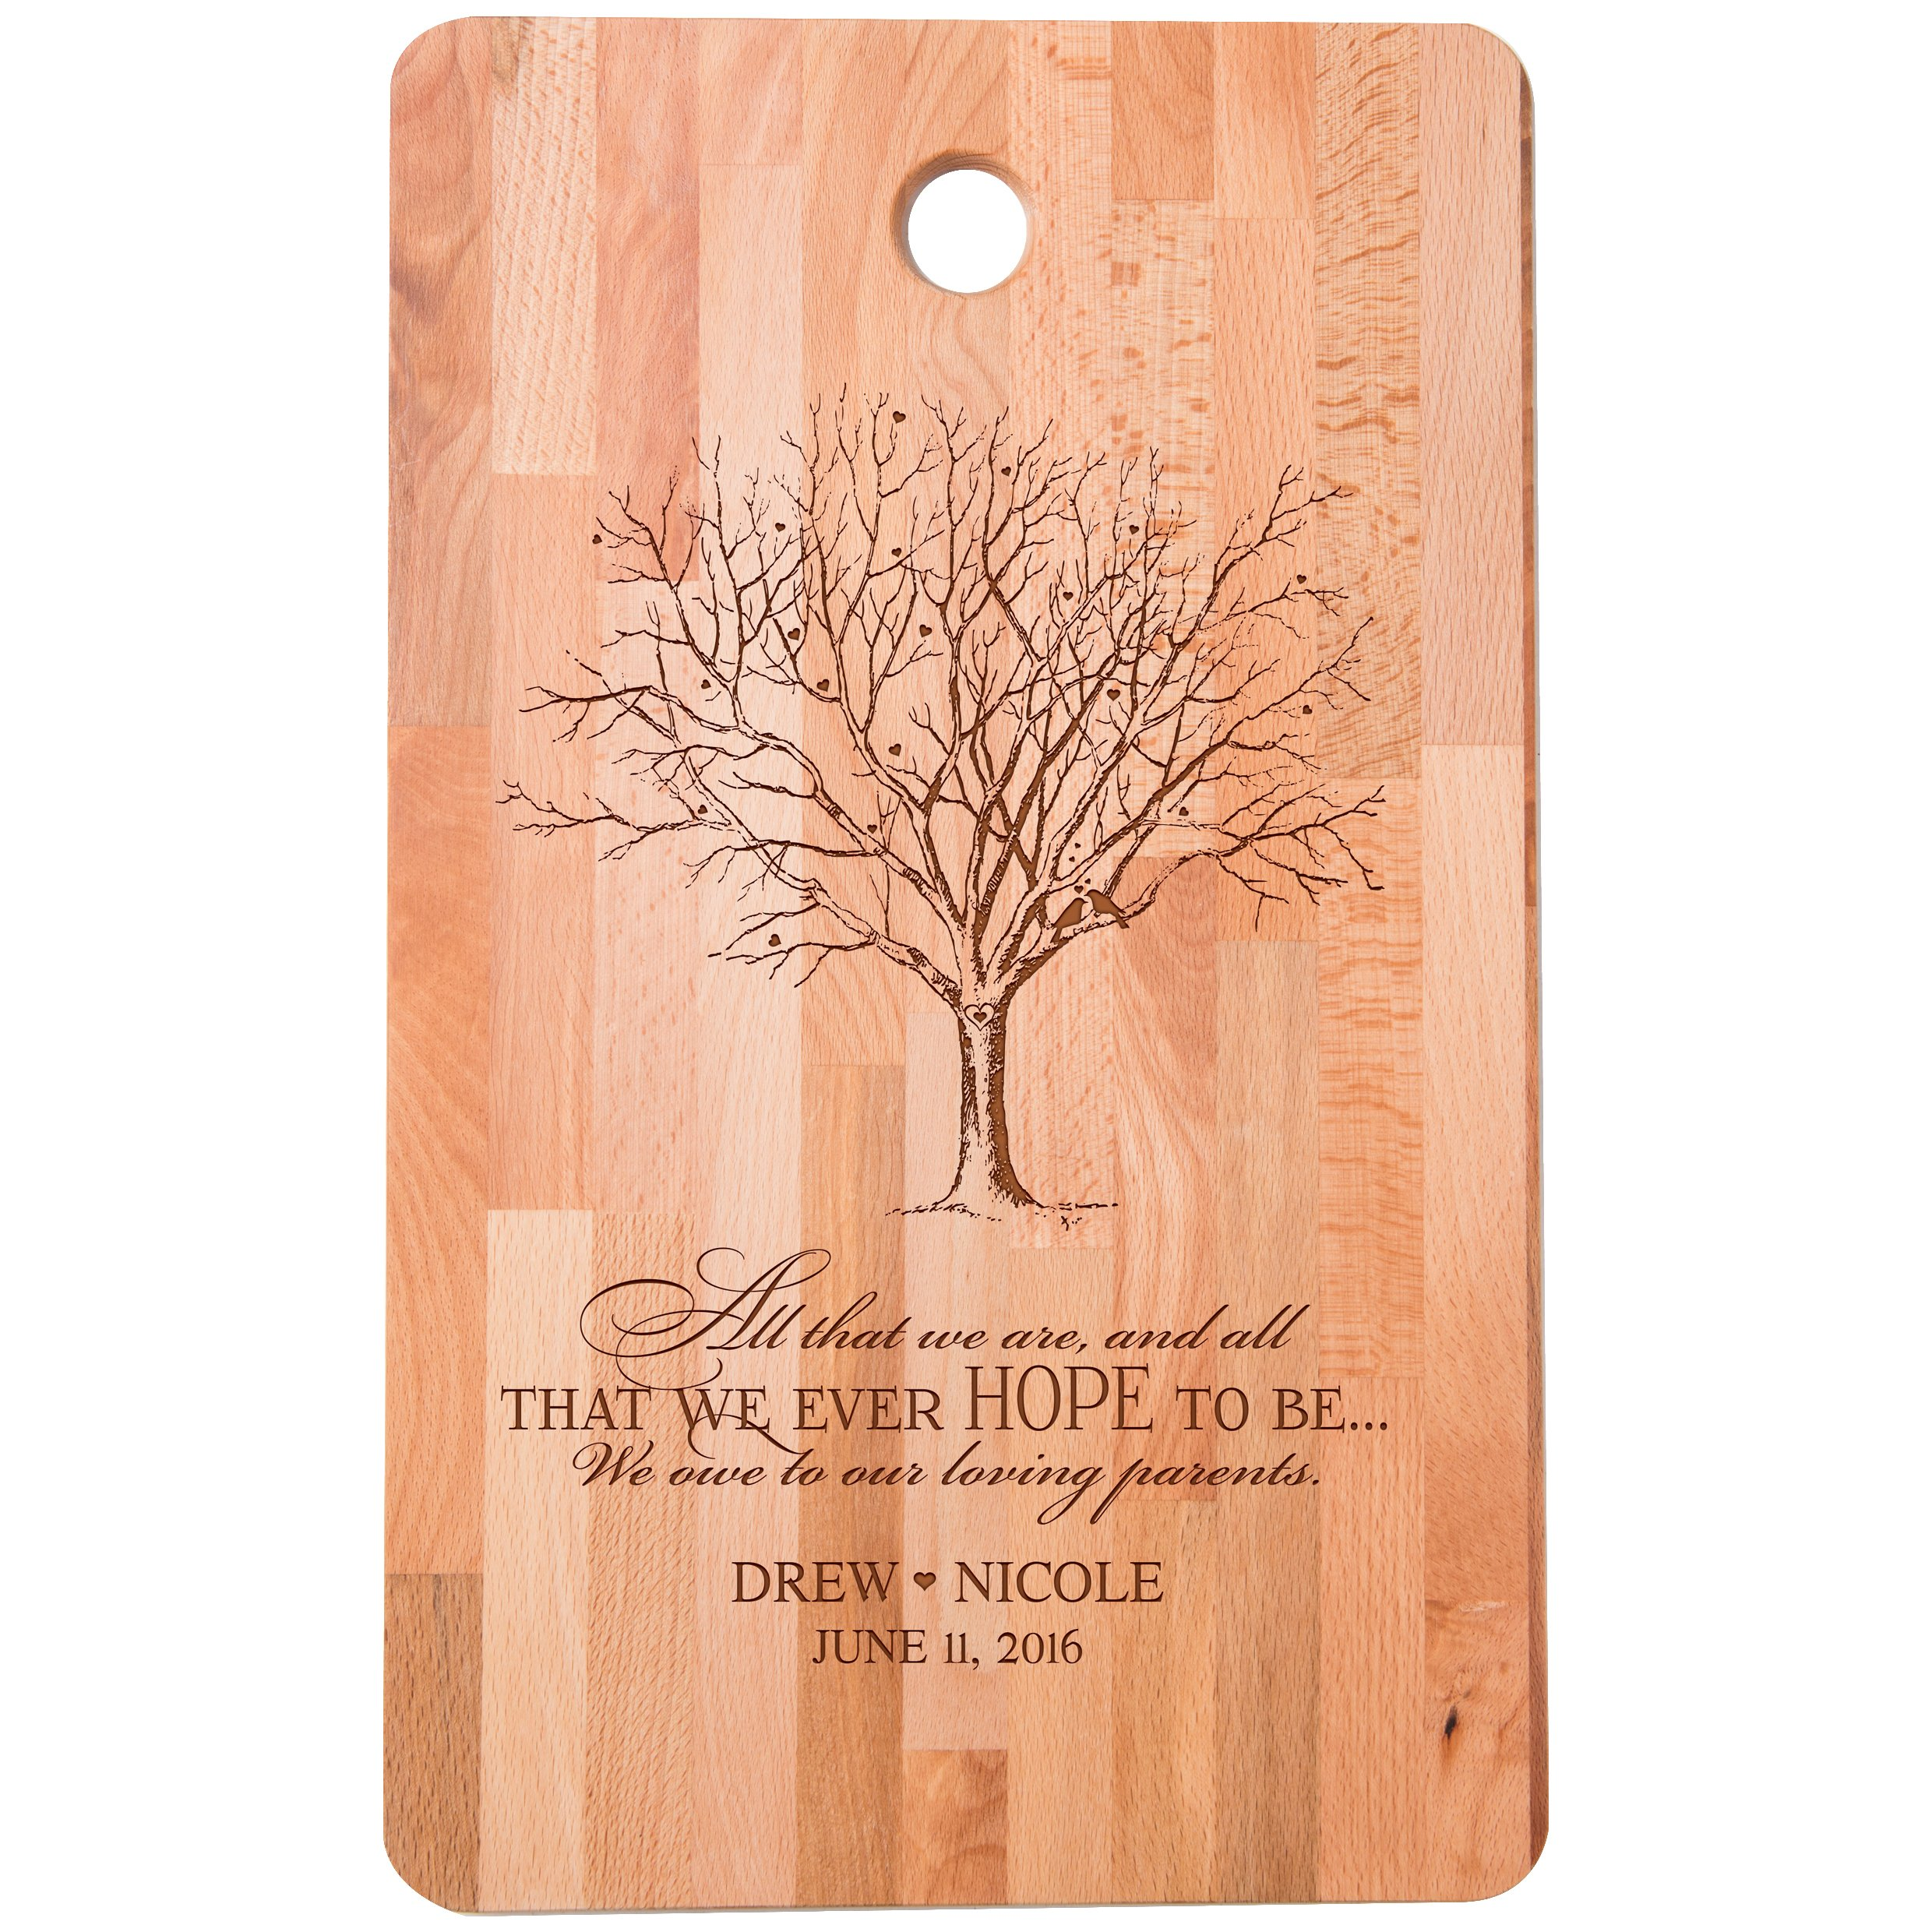 Personalized bamboo Cutting Board reads All that we are We owe to our loving parents for bride and groom Wedding Anniversary Gift Ideas for Him, Her, Couples Established Dates to Remember 11''w x 18''h